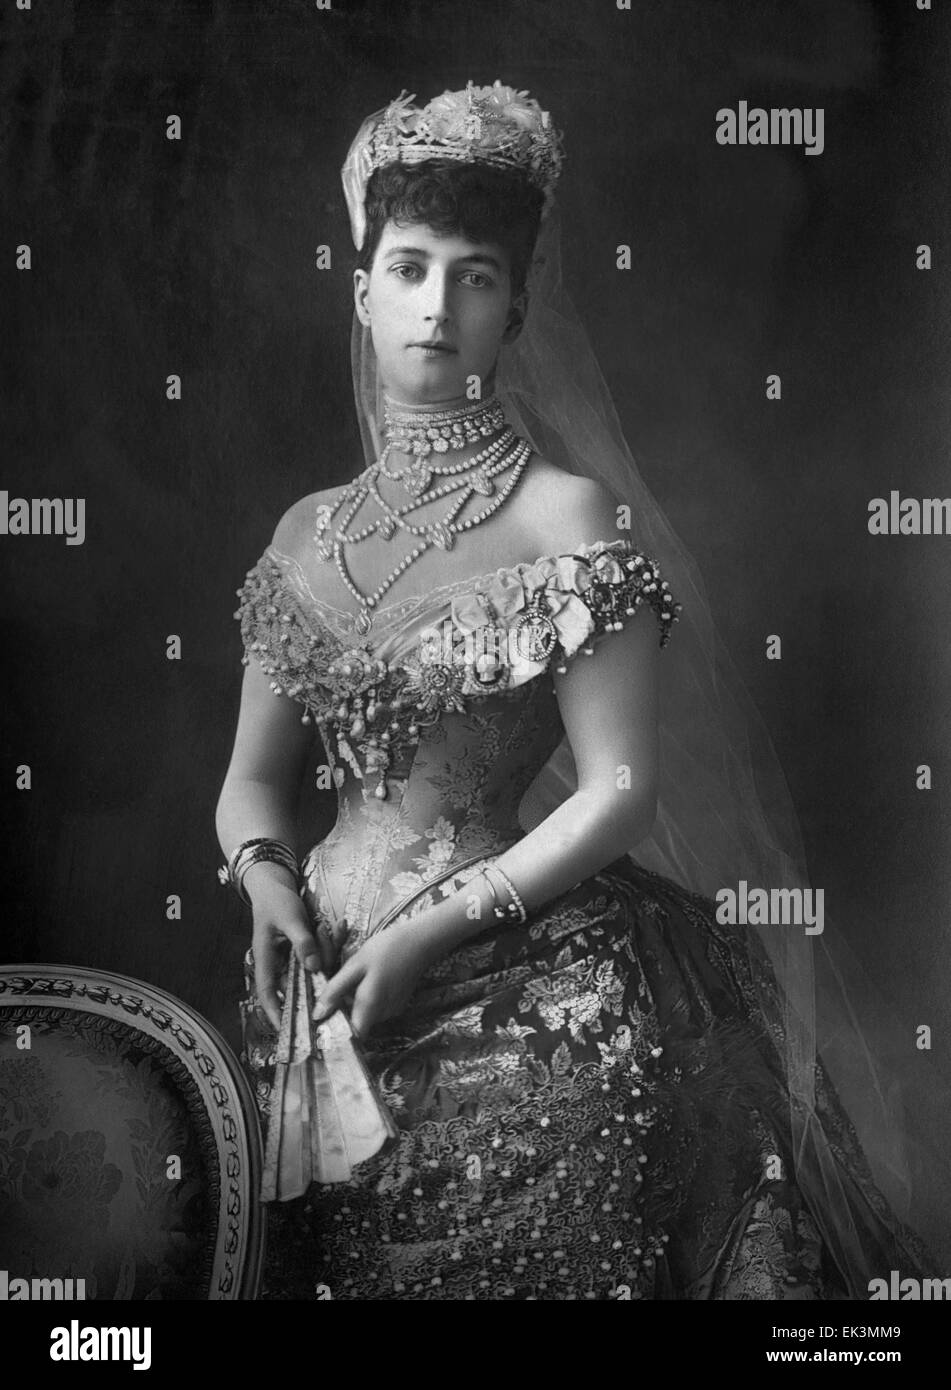 Alexandra of Denmark (1844-1925) Queen Consort of United Kingdom and Empress of India as Wife of King Edward VII - Stock Image